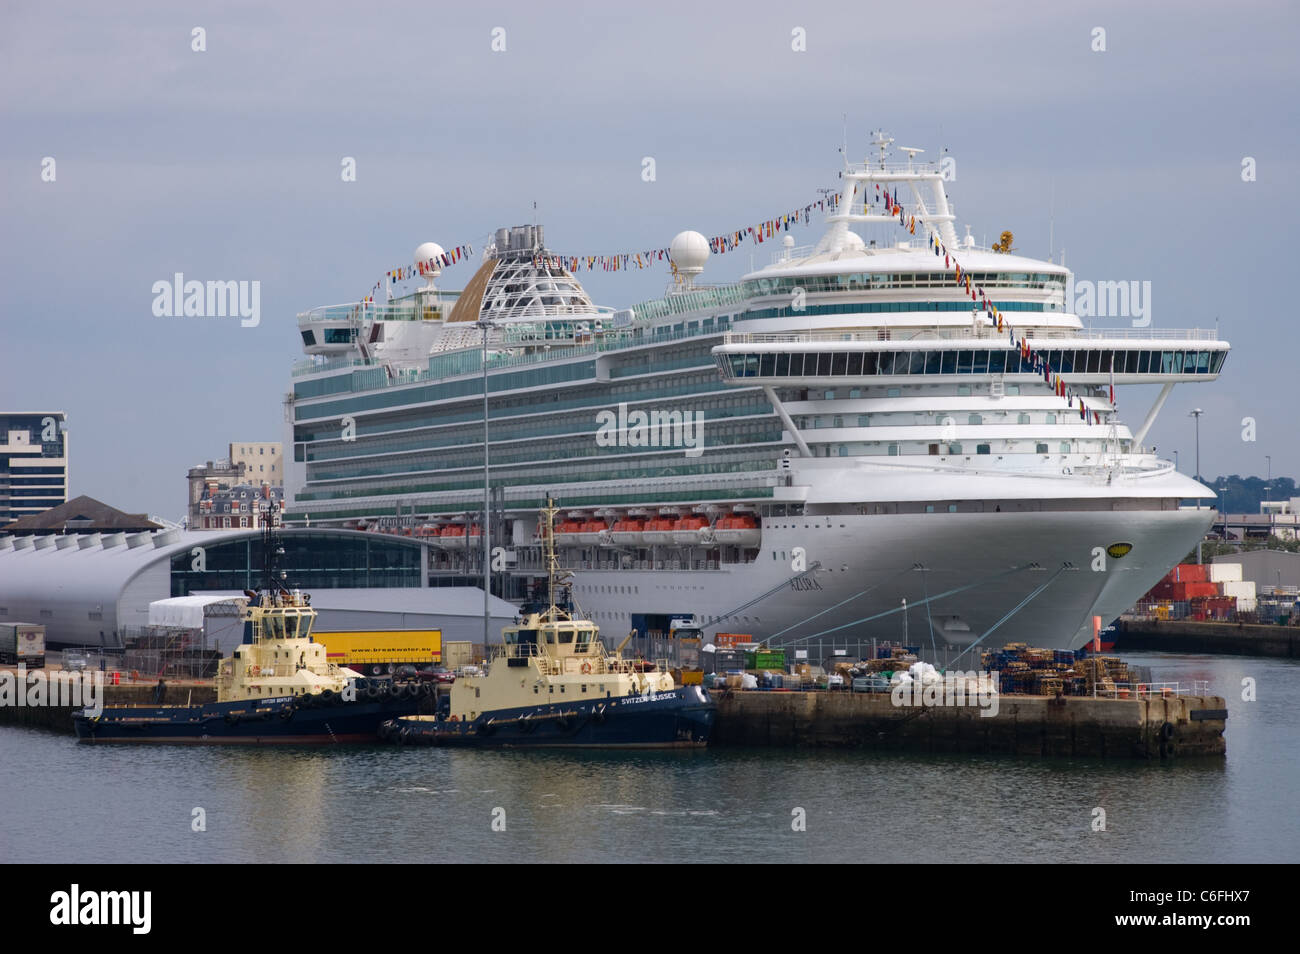 Azura one of the largest cruise ships in the P&O Cruises fleet docked at Southampton. Stock Photo